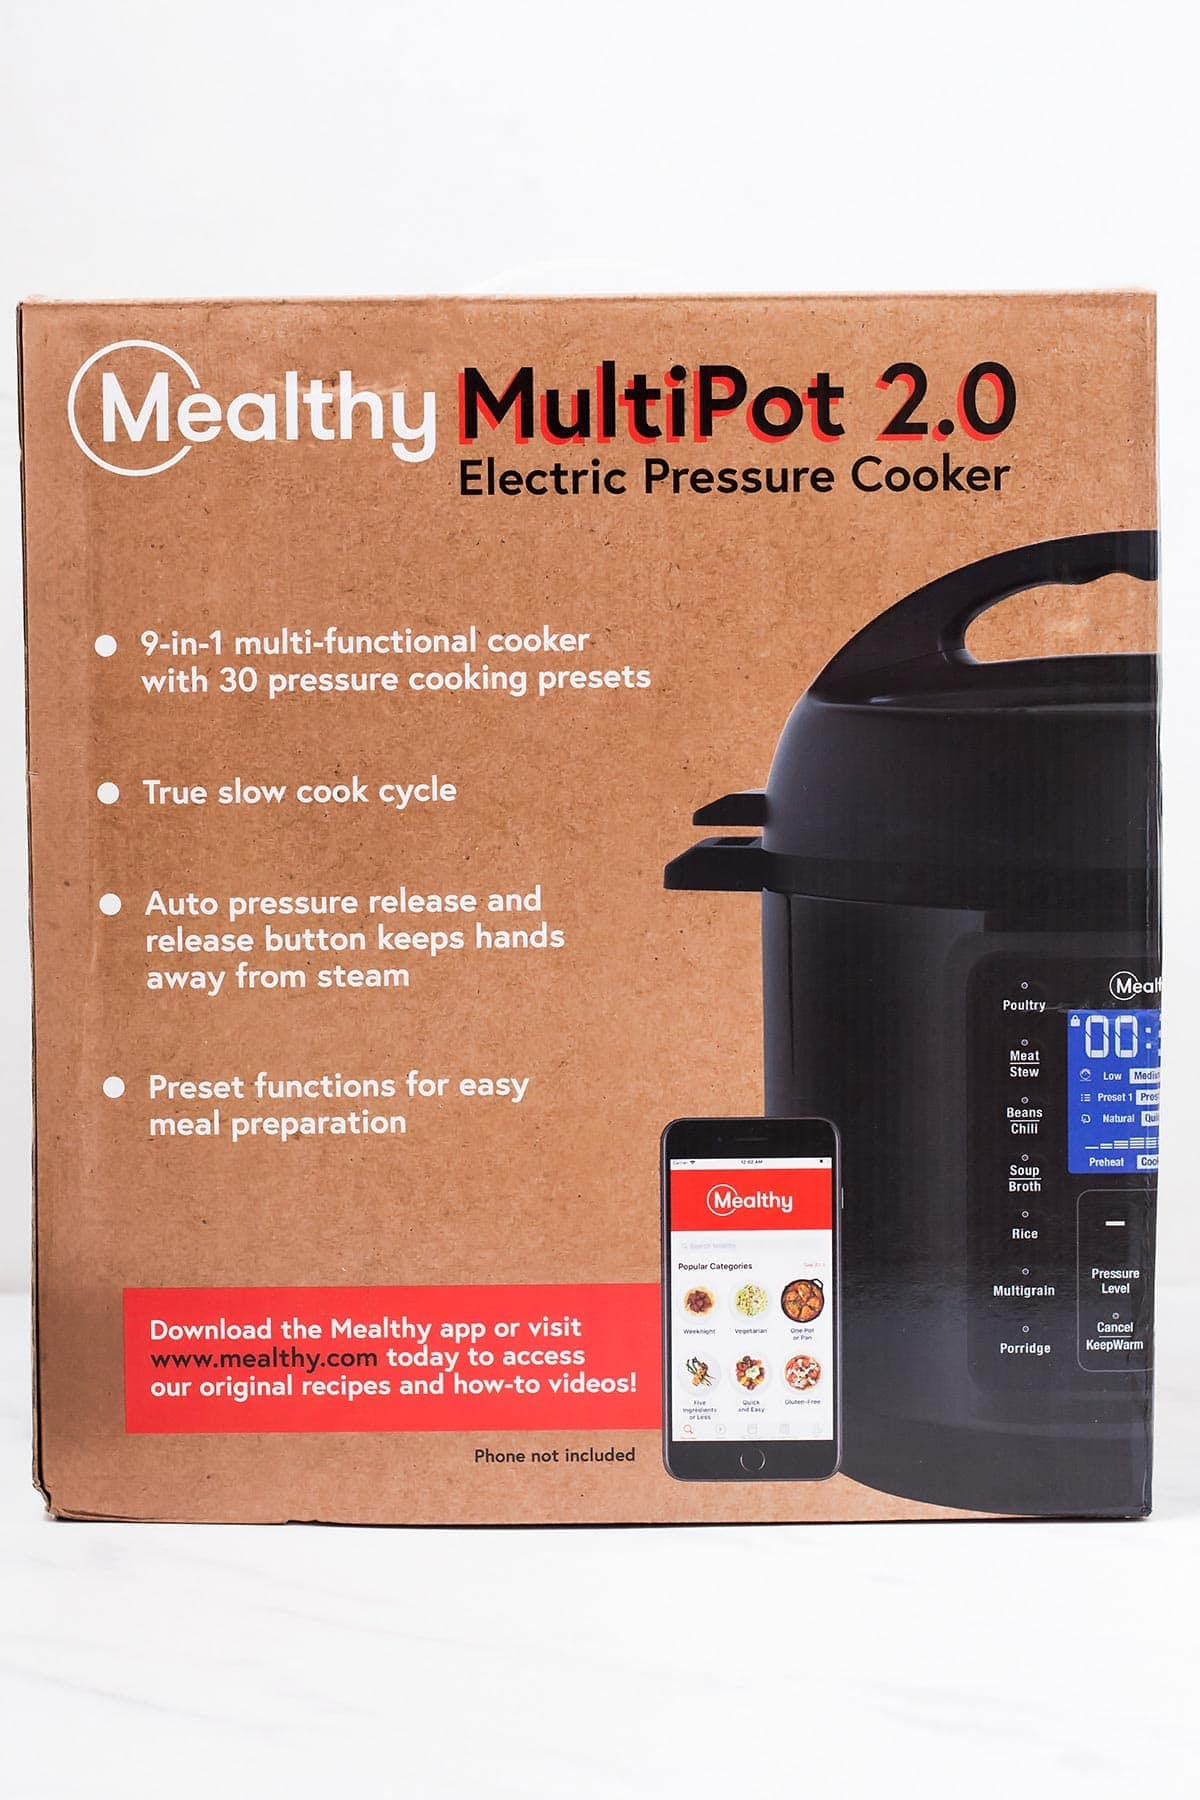 Mealthy Pressure Cooker in the box